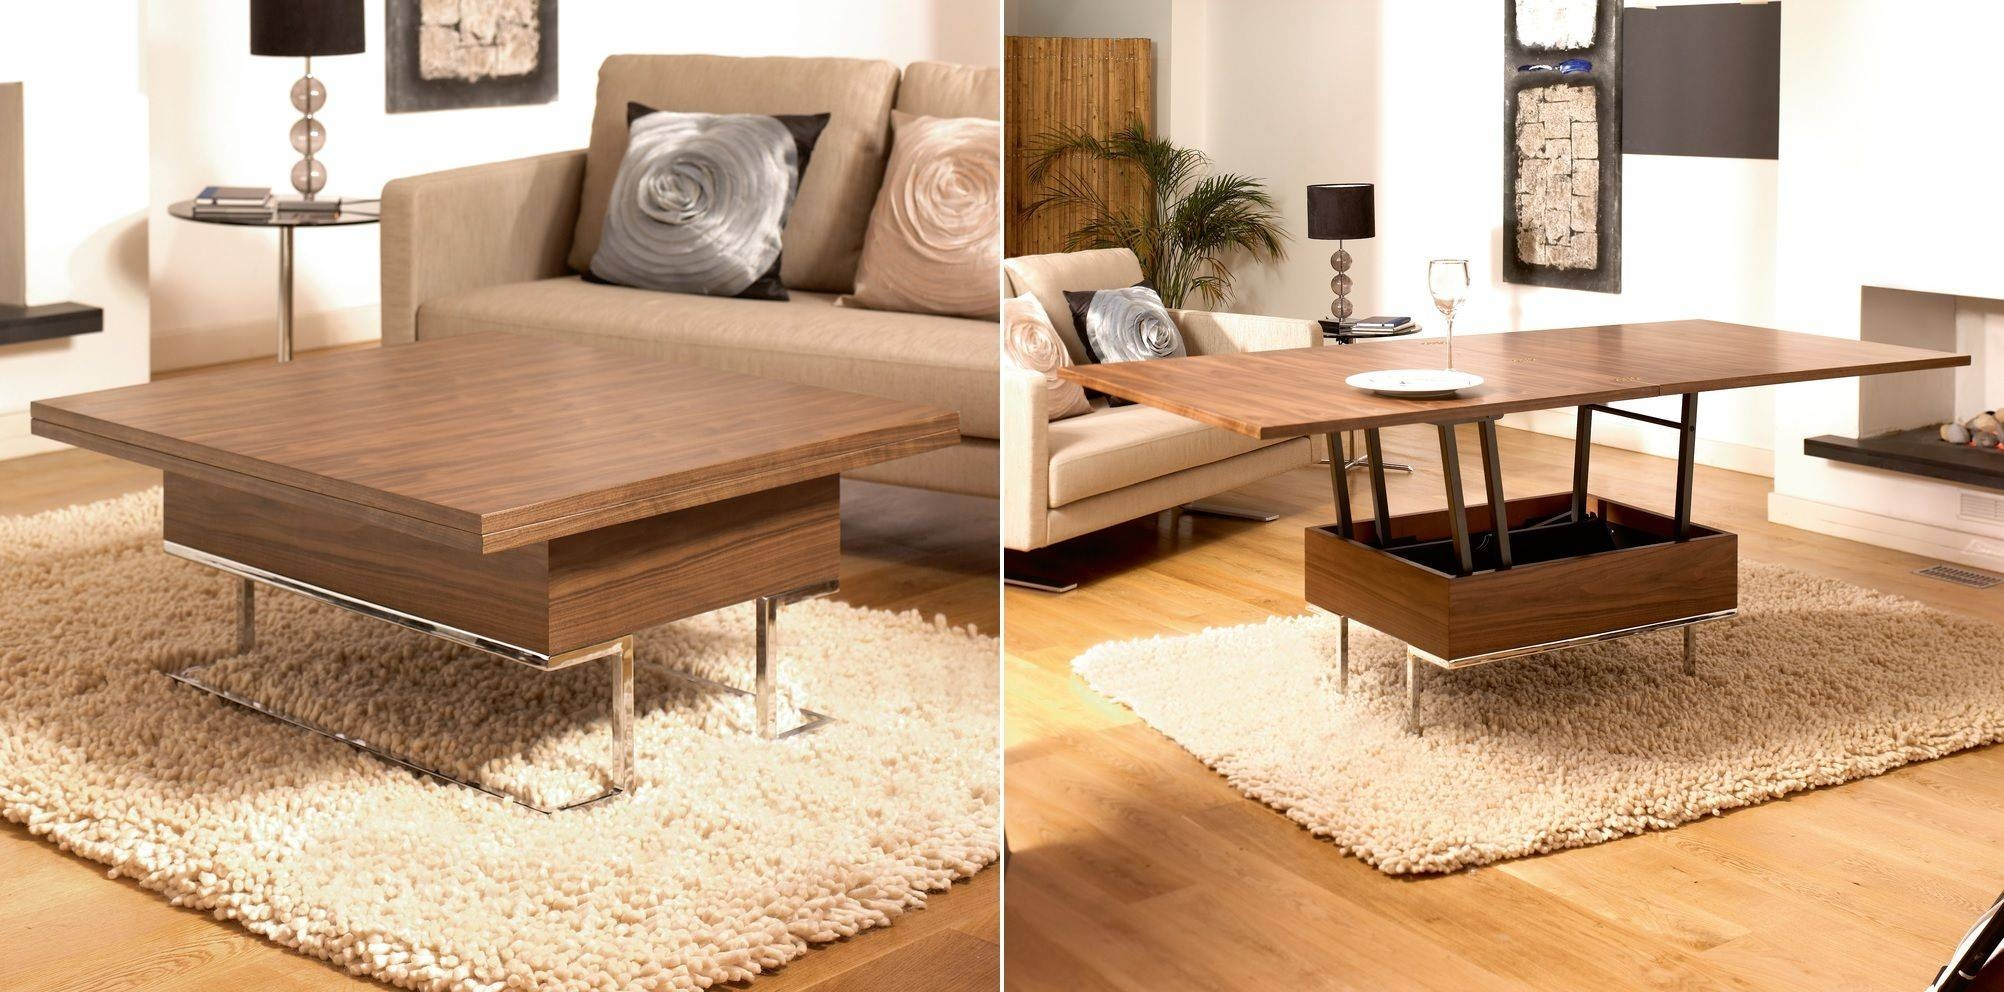 Round Coffee Table Converts To Dining Table | Coffee Tables Decoration throughout Coffee Tables Extendable Top (Image 25 of 30)